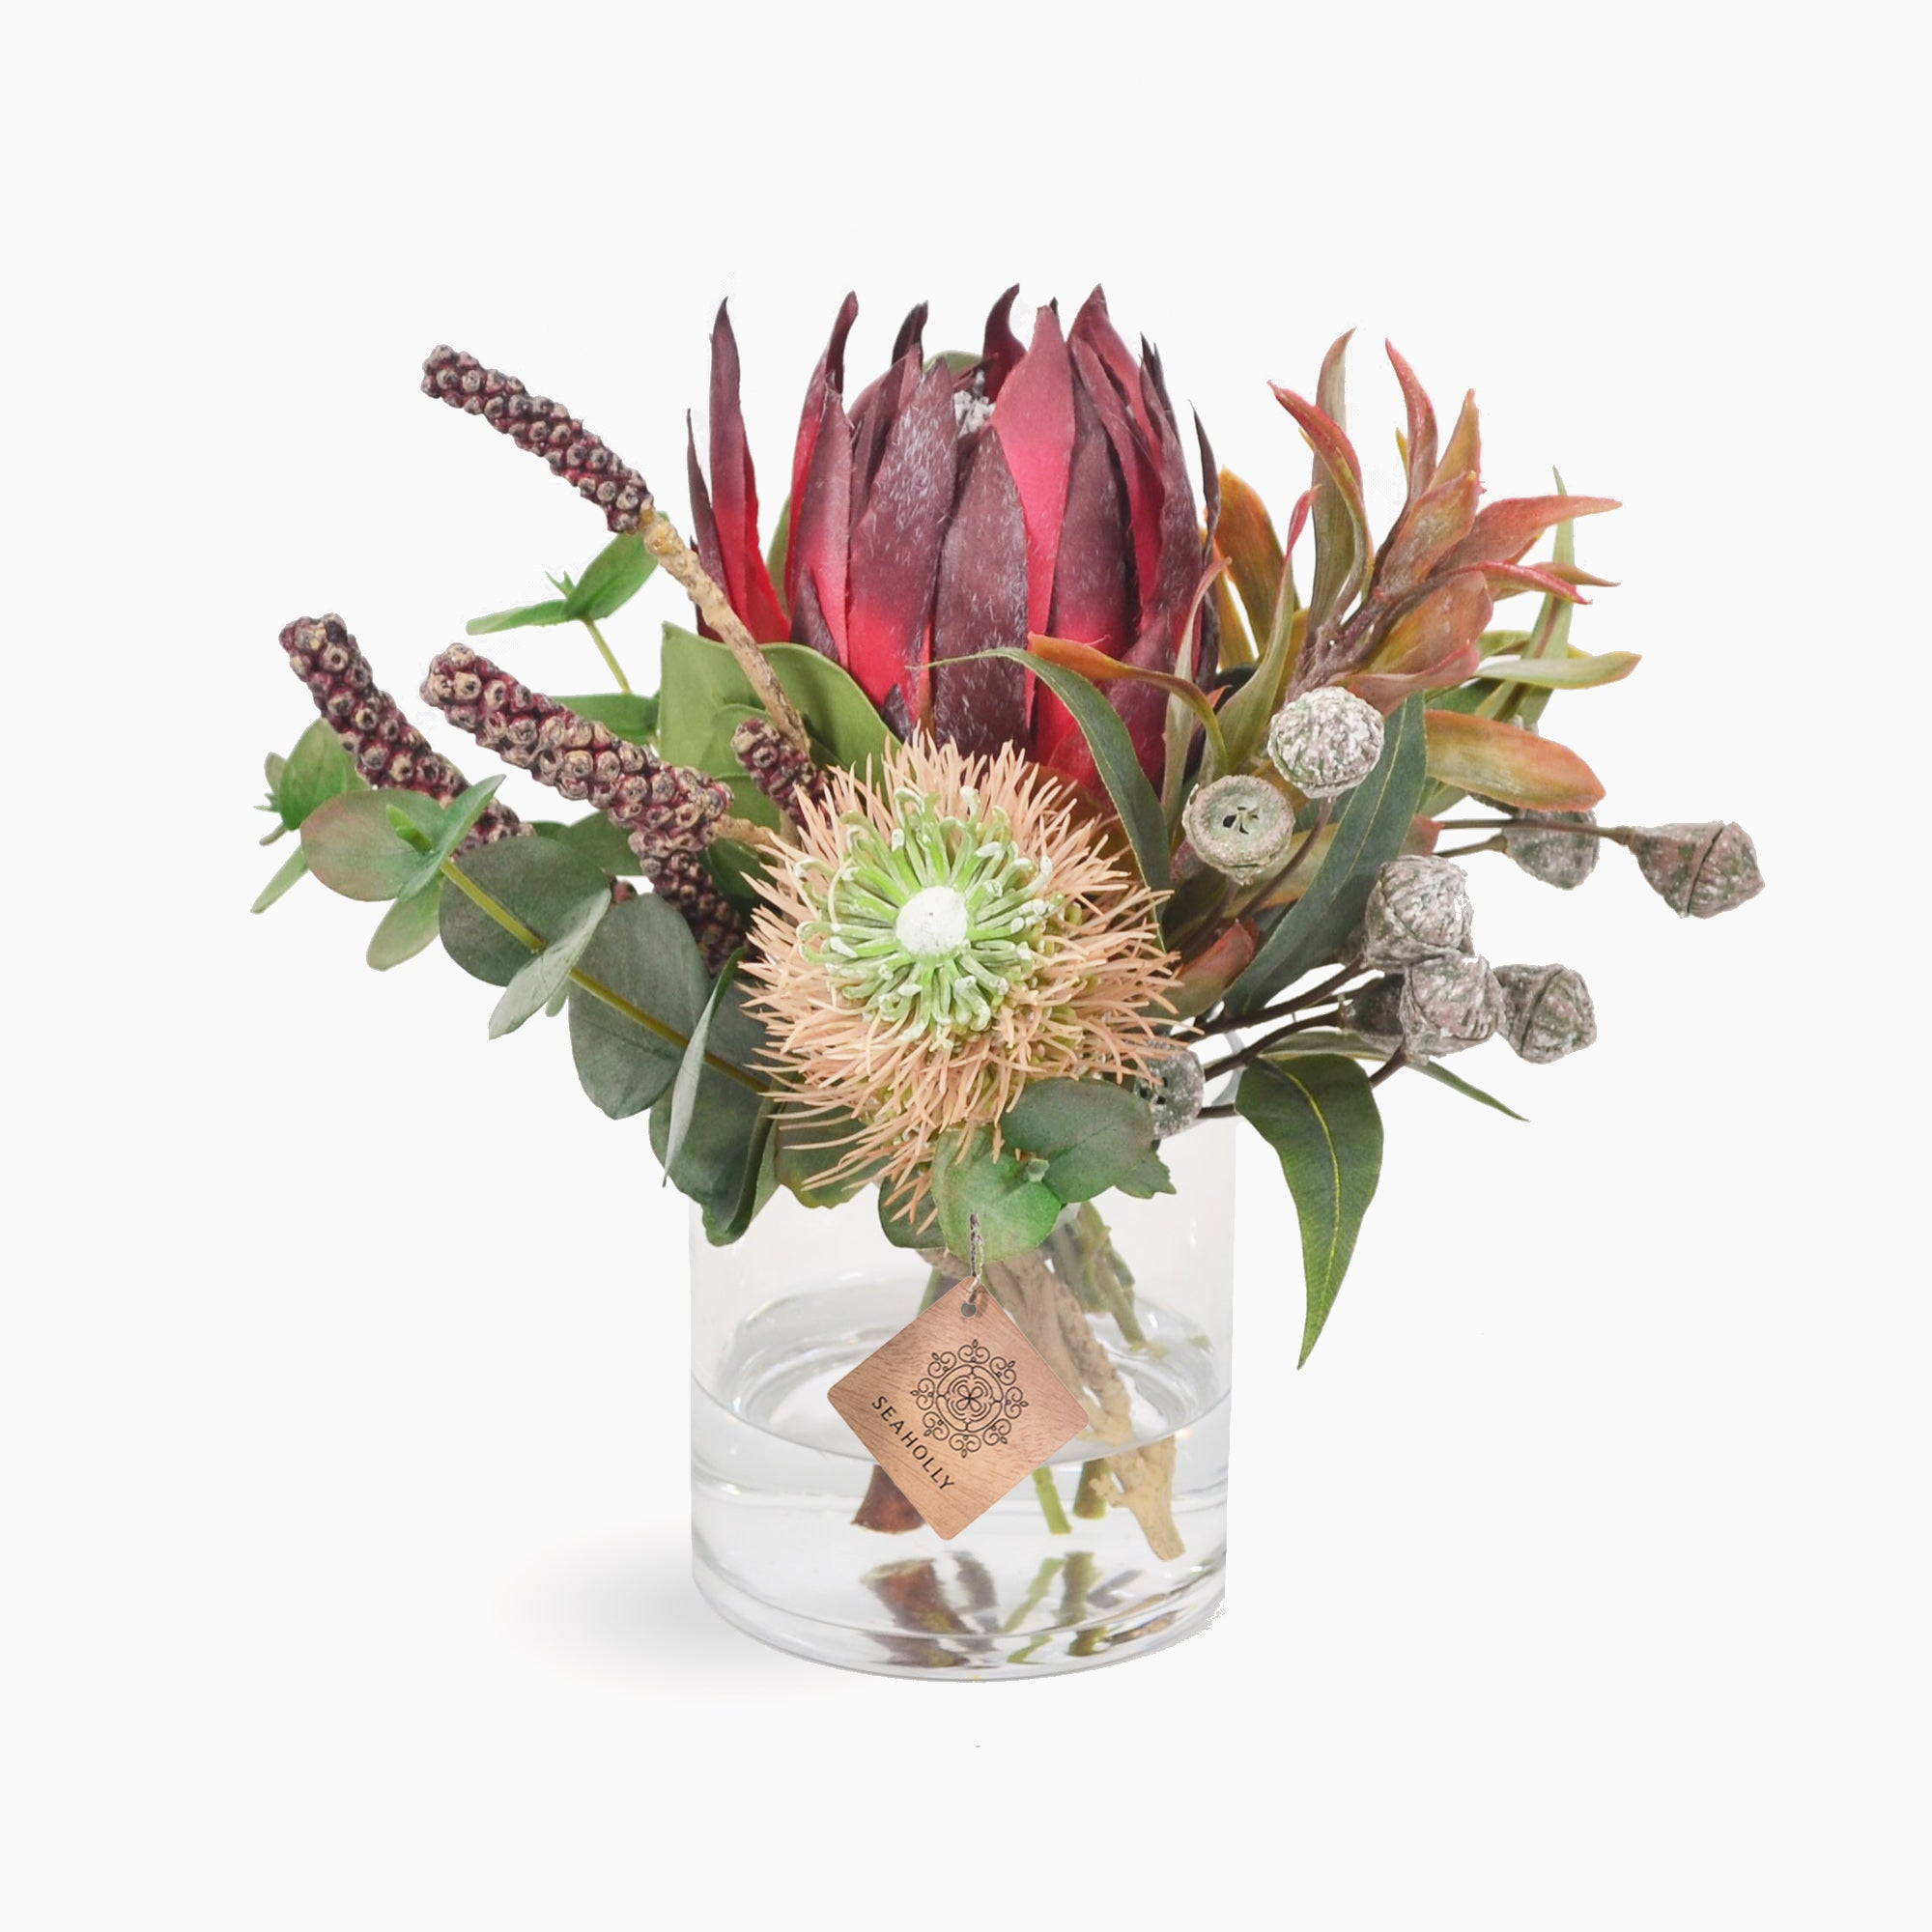 Burgundy protea, bottlebrush pods and gumnuts (Small)